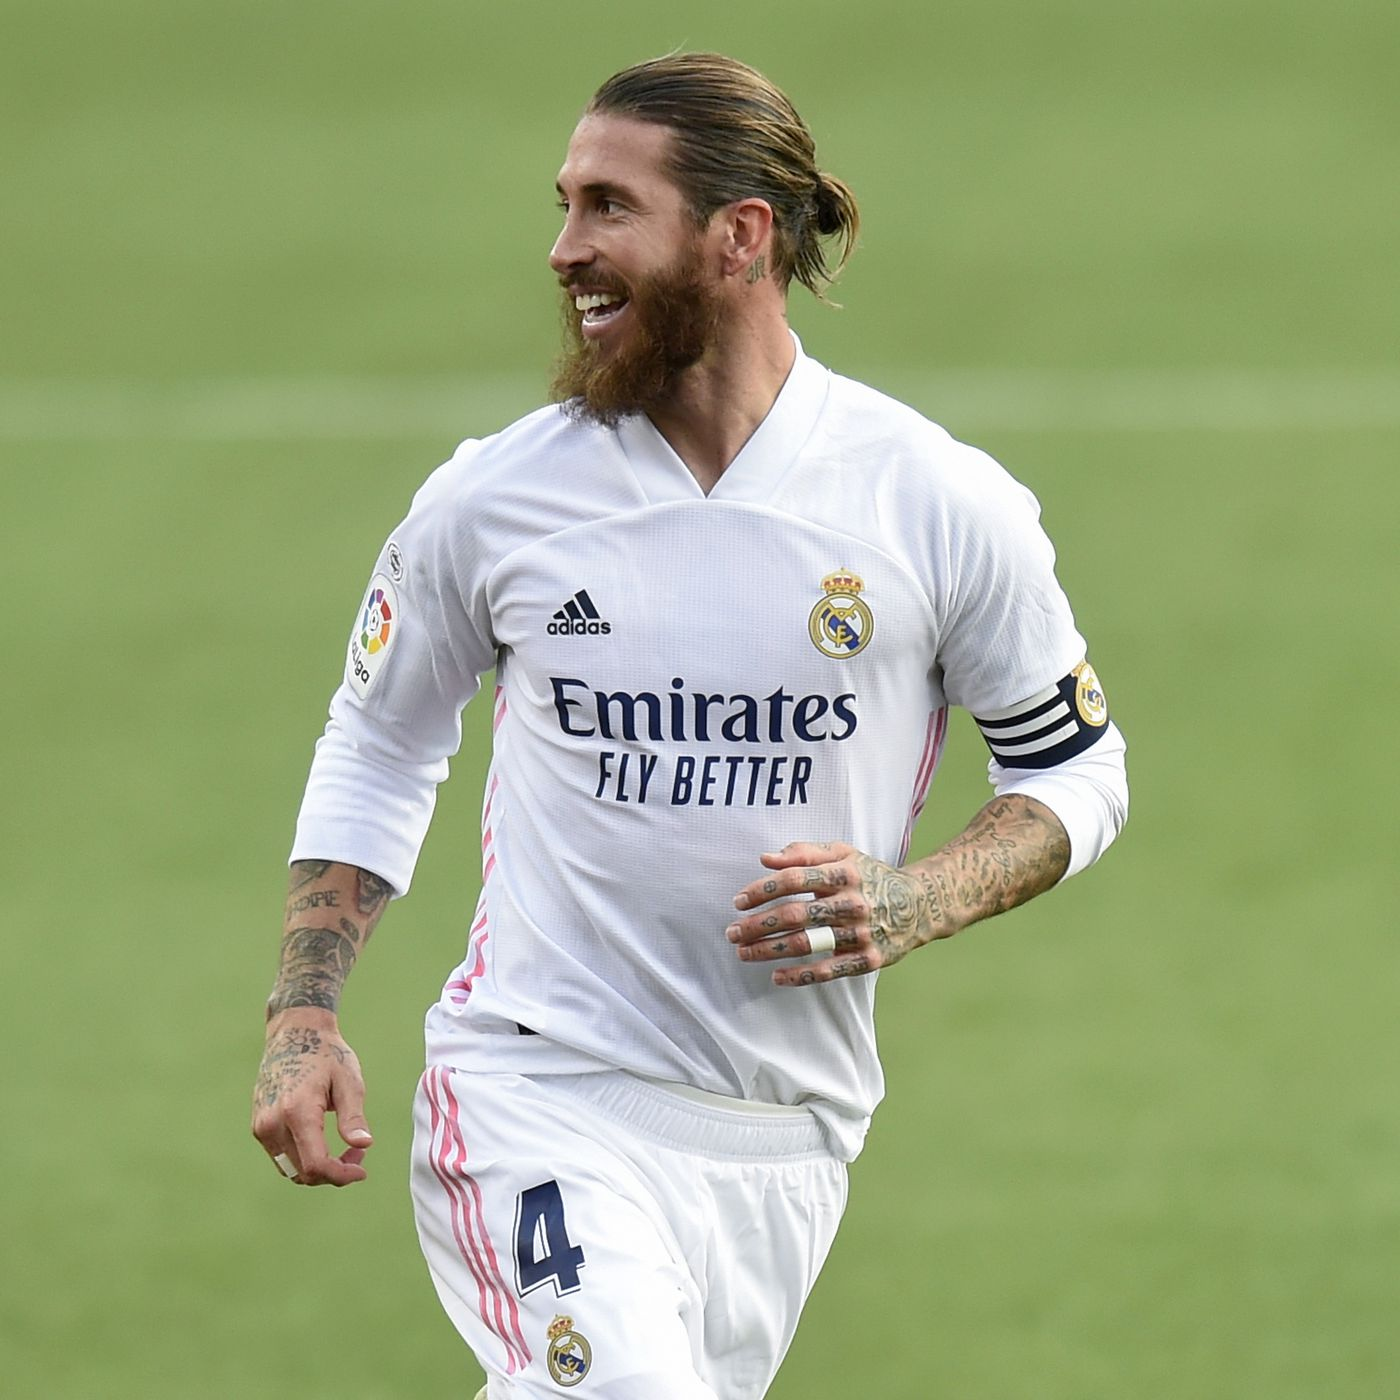 Barca presidential candidate says he'd sign Sergio Ramos - Barca Blaugranes